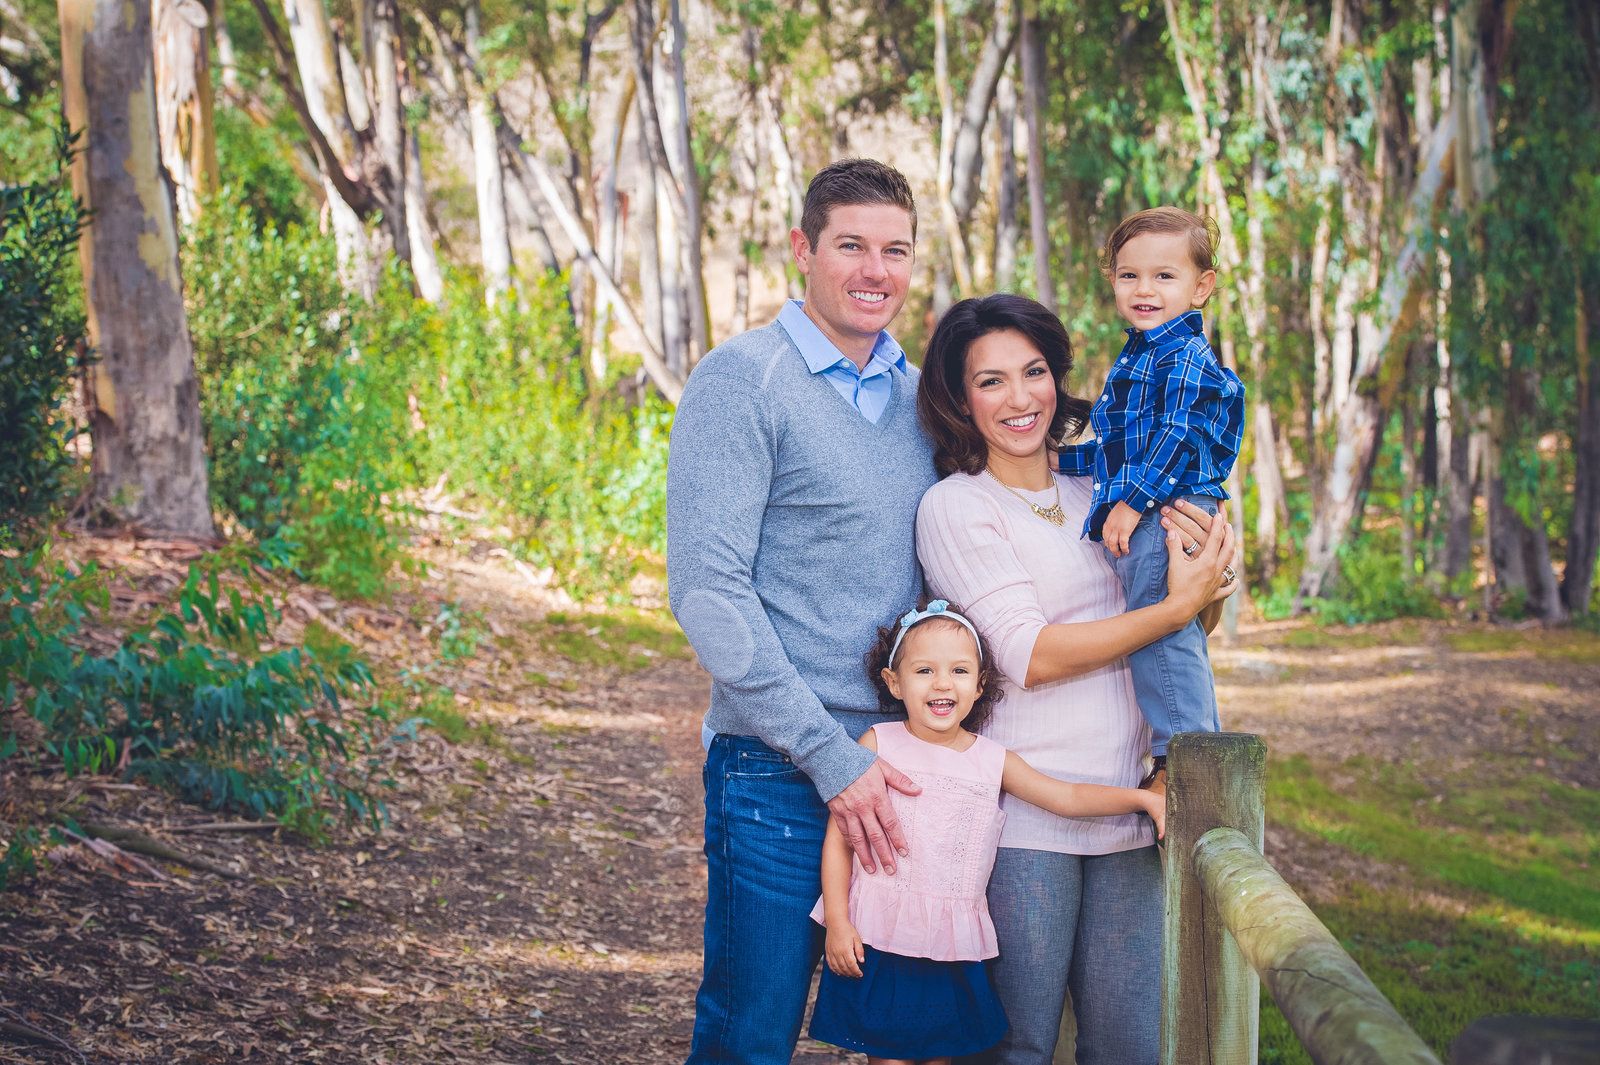 Family photography at Laguna Niguel Park by inGRACE photography